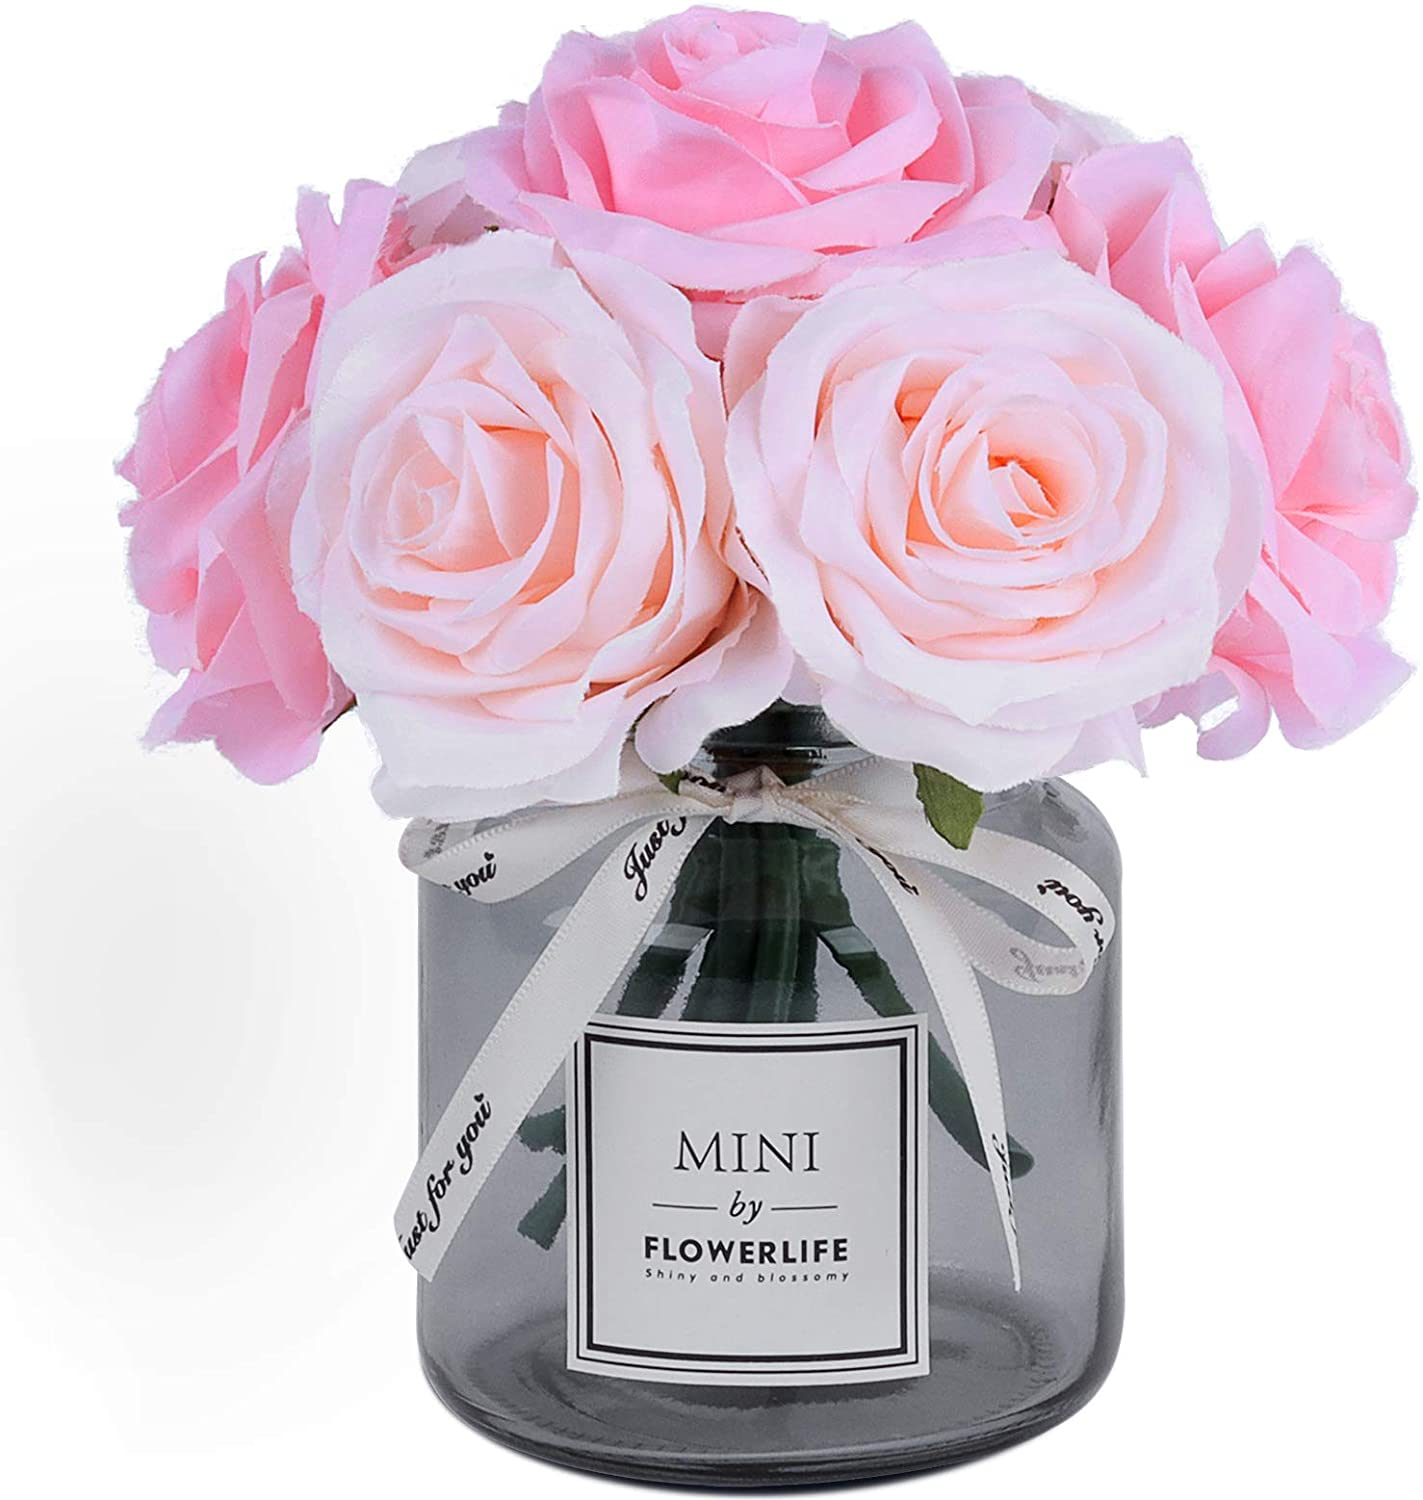 NA Artificial Flower and Glass vase, Silk Rose Flower Glass Bottle Set, Suitable for Living Room, Dining Table, Office, Wedding, Hotel Banquet and Other Home Decoration. (Pink)